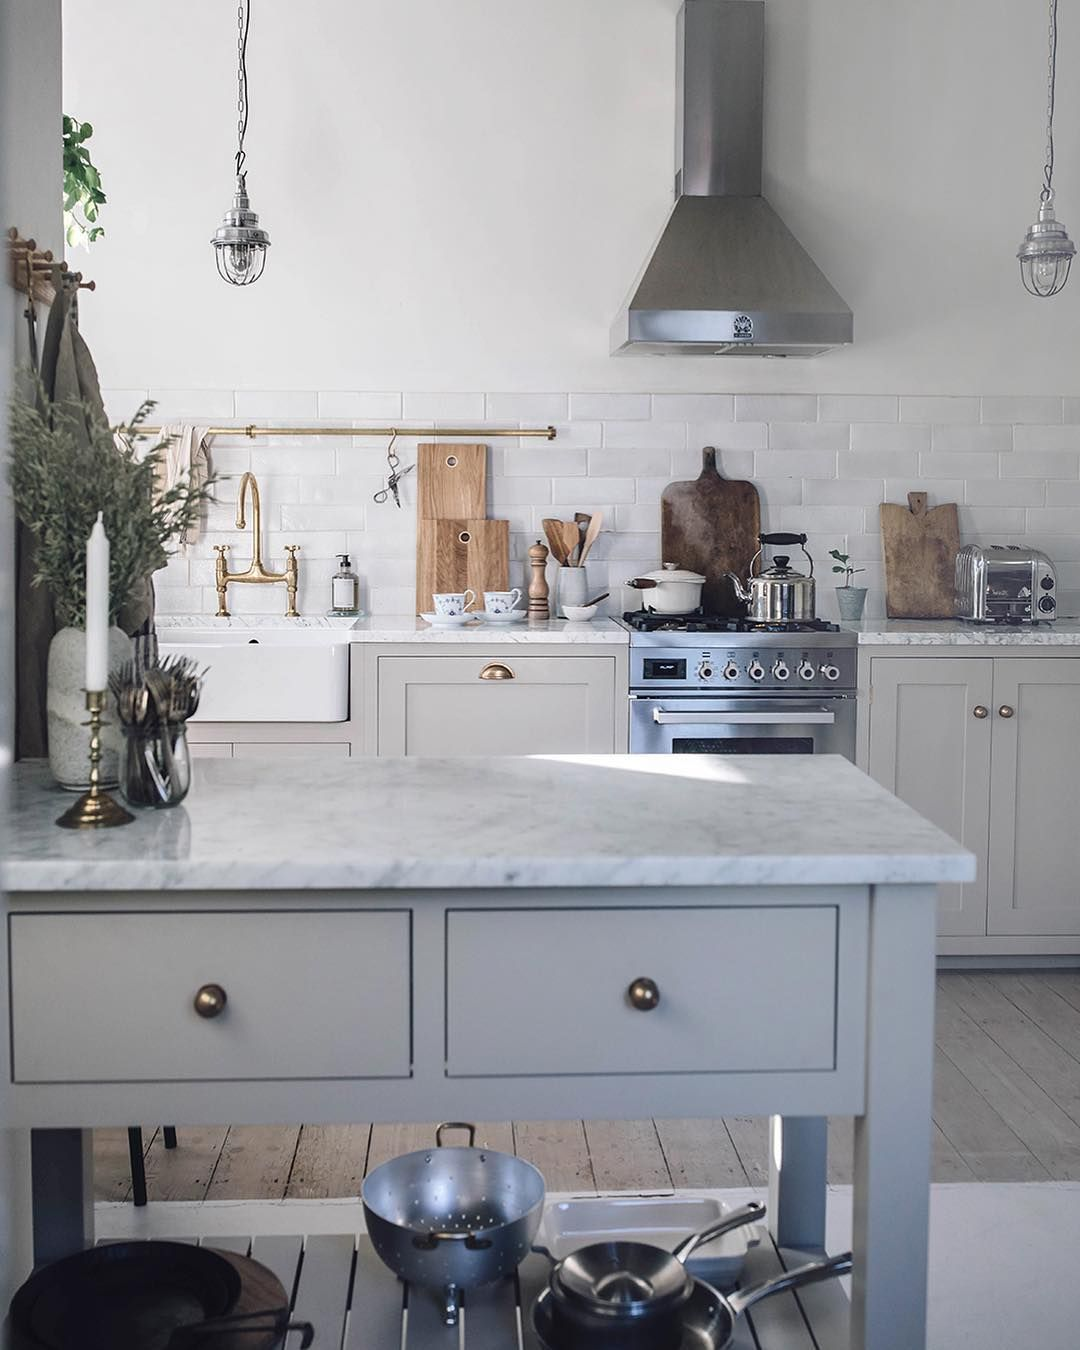 Devol kitchens on instagram ucyou might not have enough space for a